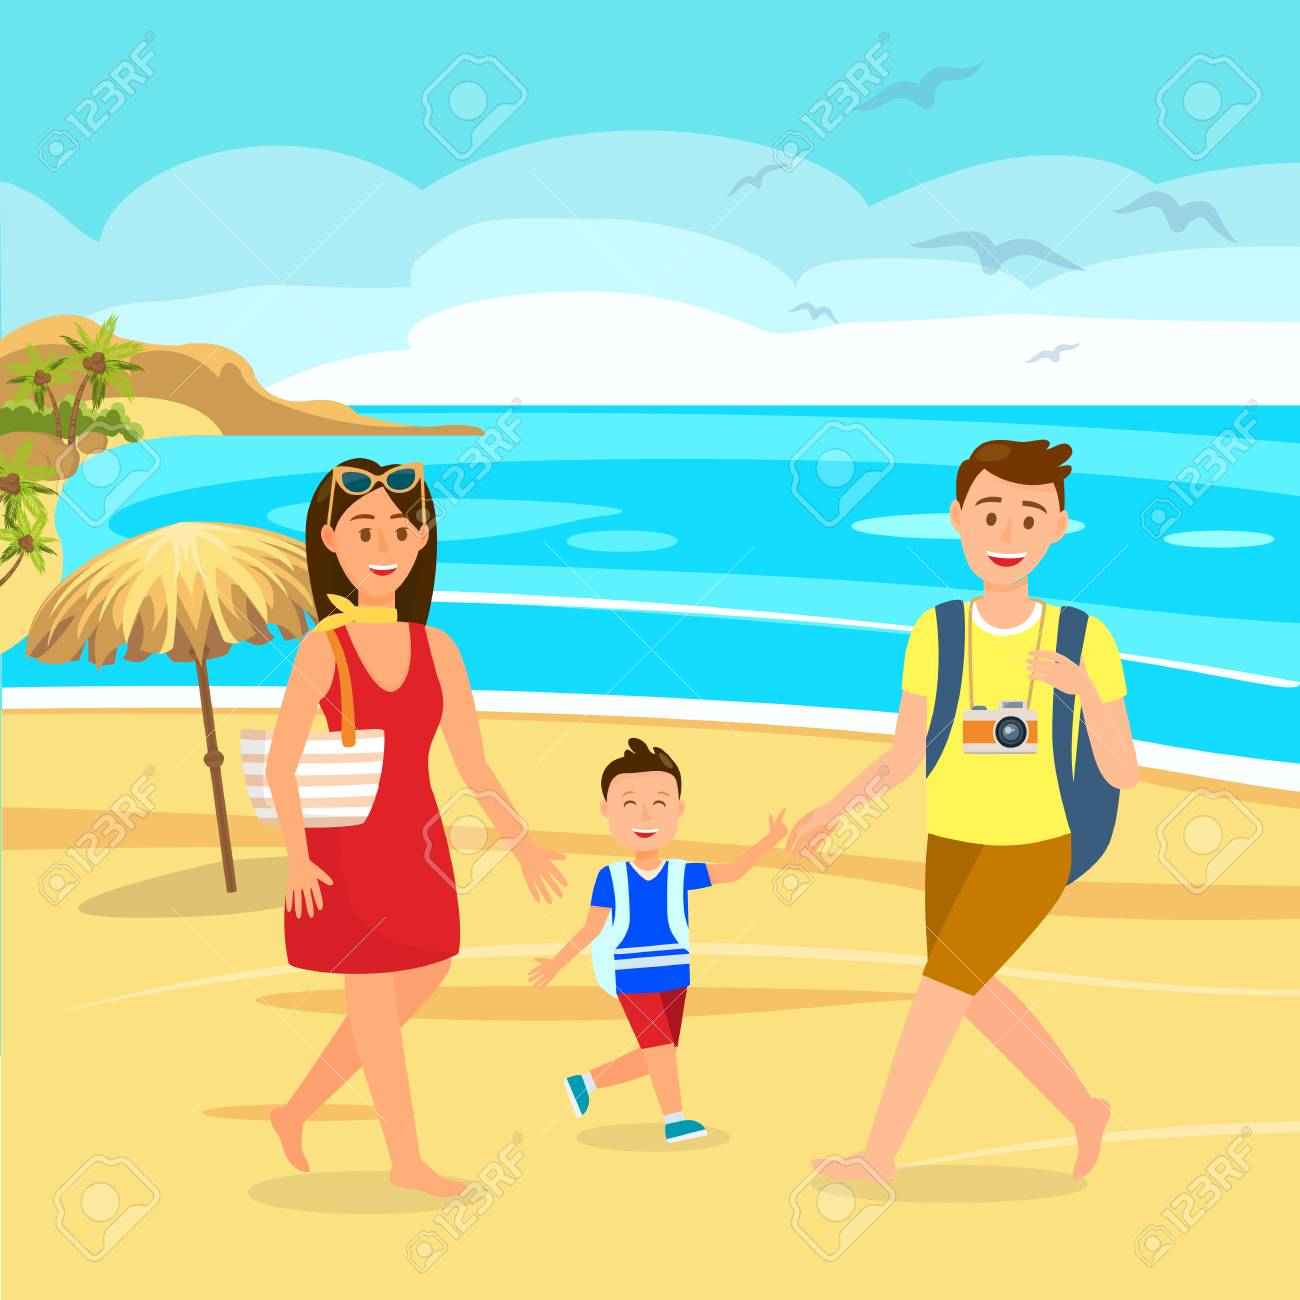 Summer Holidays On Beach Cartoon Illustration Family On Holiday Royalty Free Cliparts Vectors And Stock Illustration Image 124976153